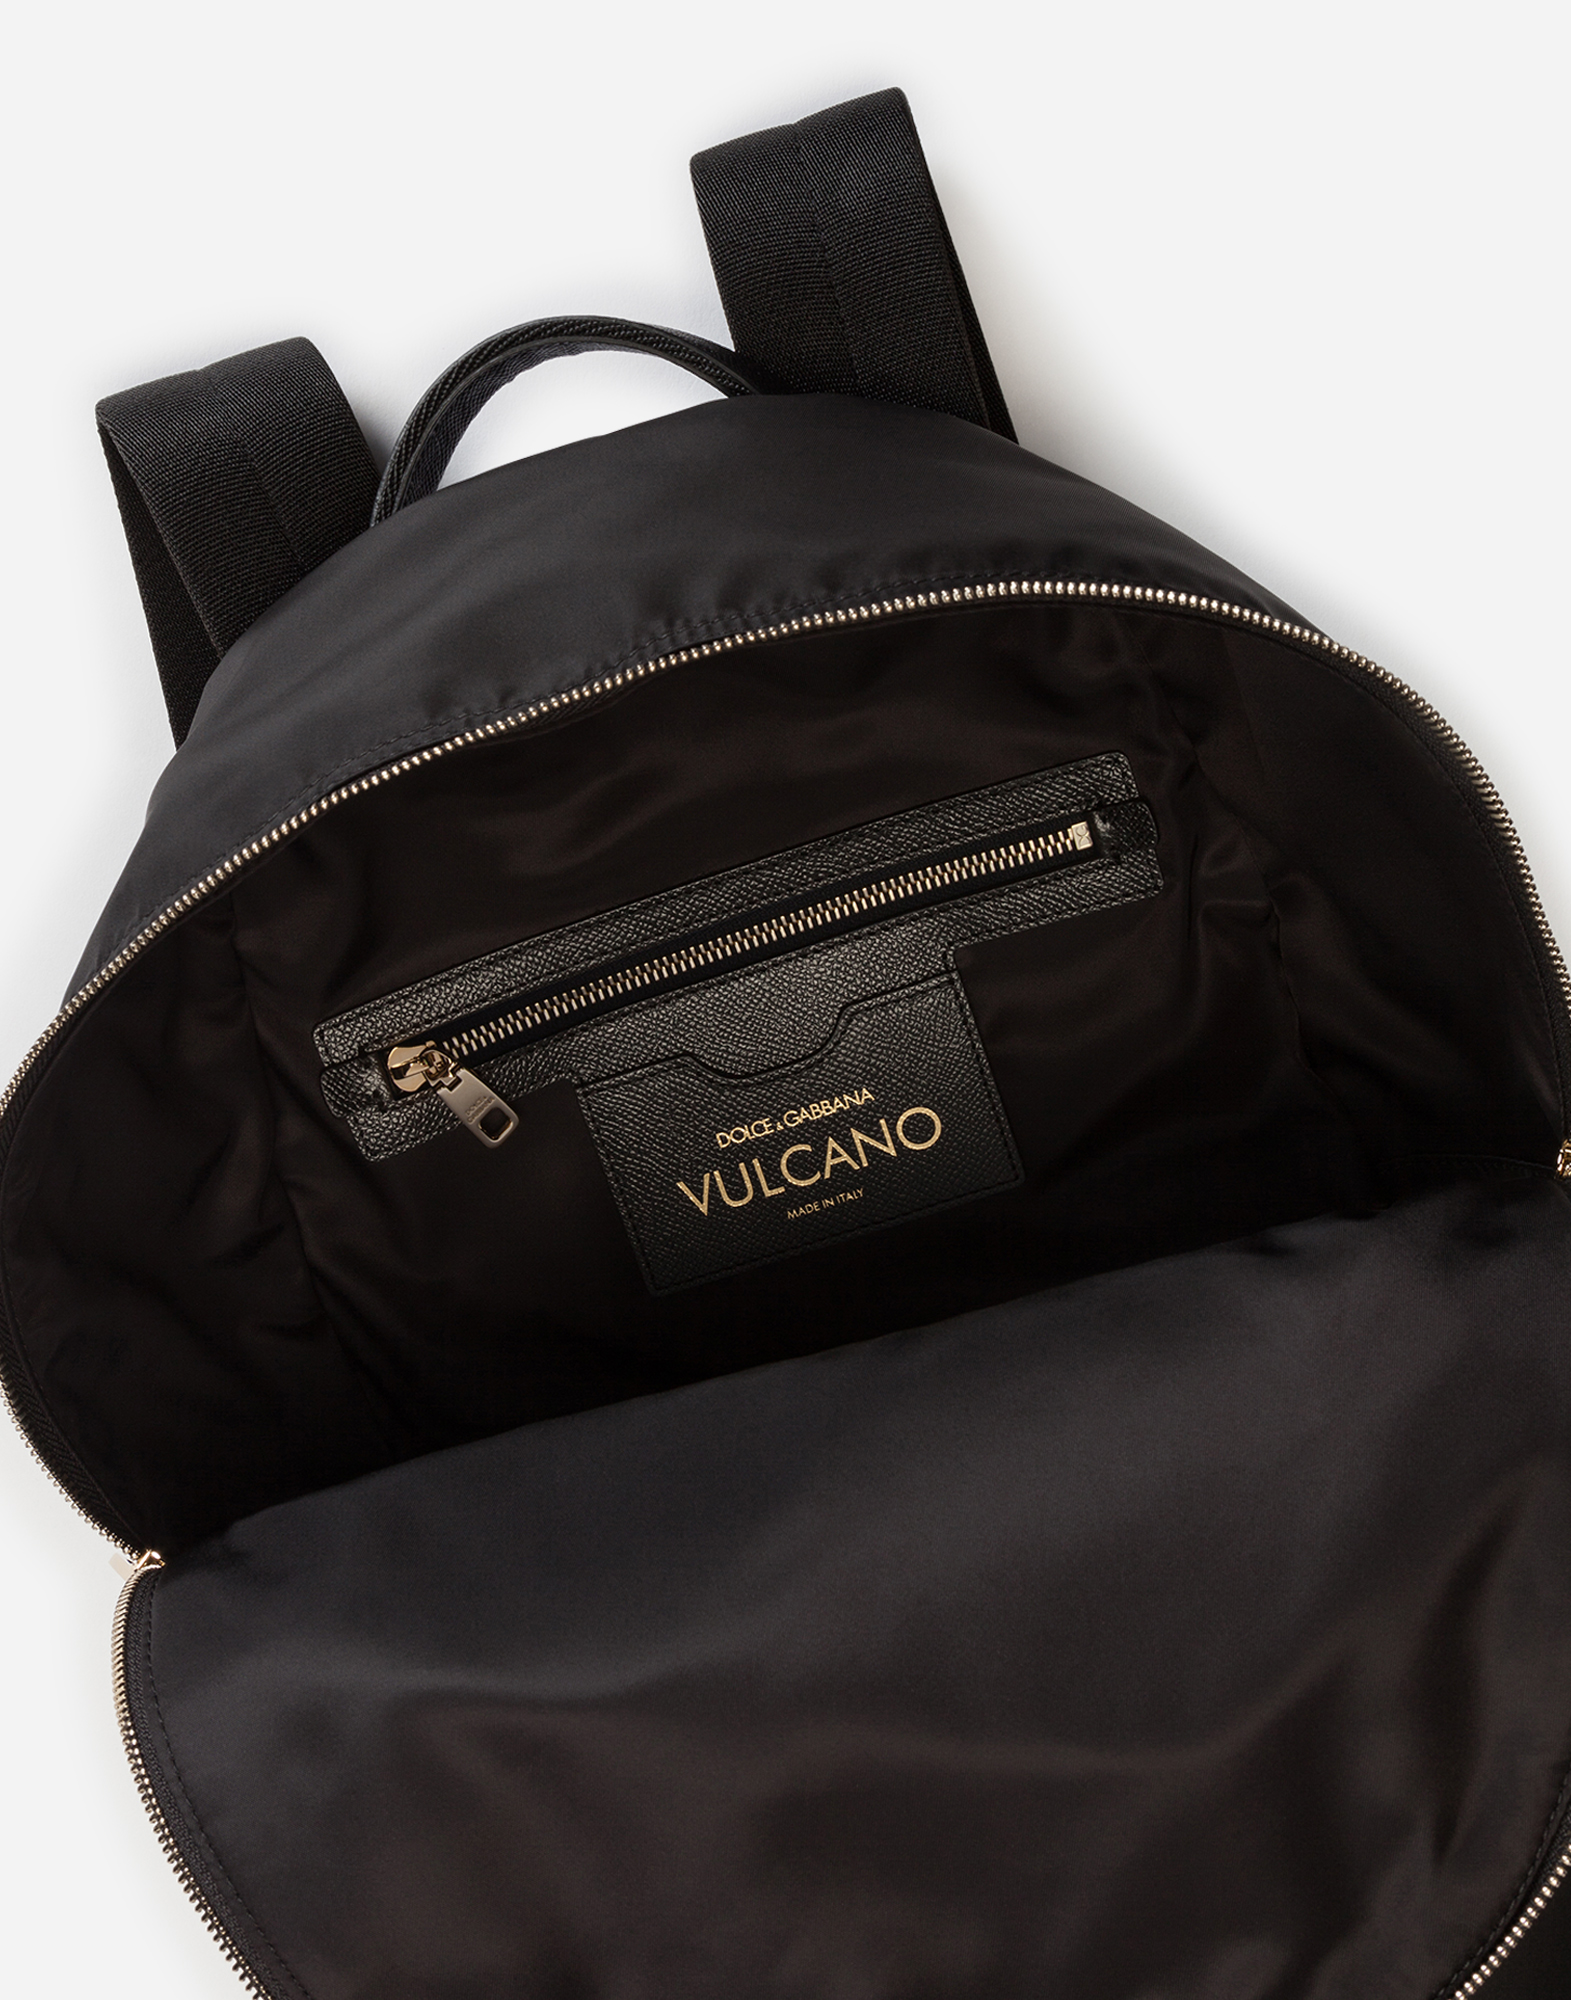 VULCANO BACKPACK WITH PATCHES OF THE DESIGNERS